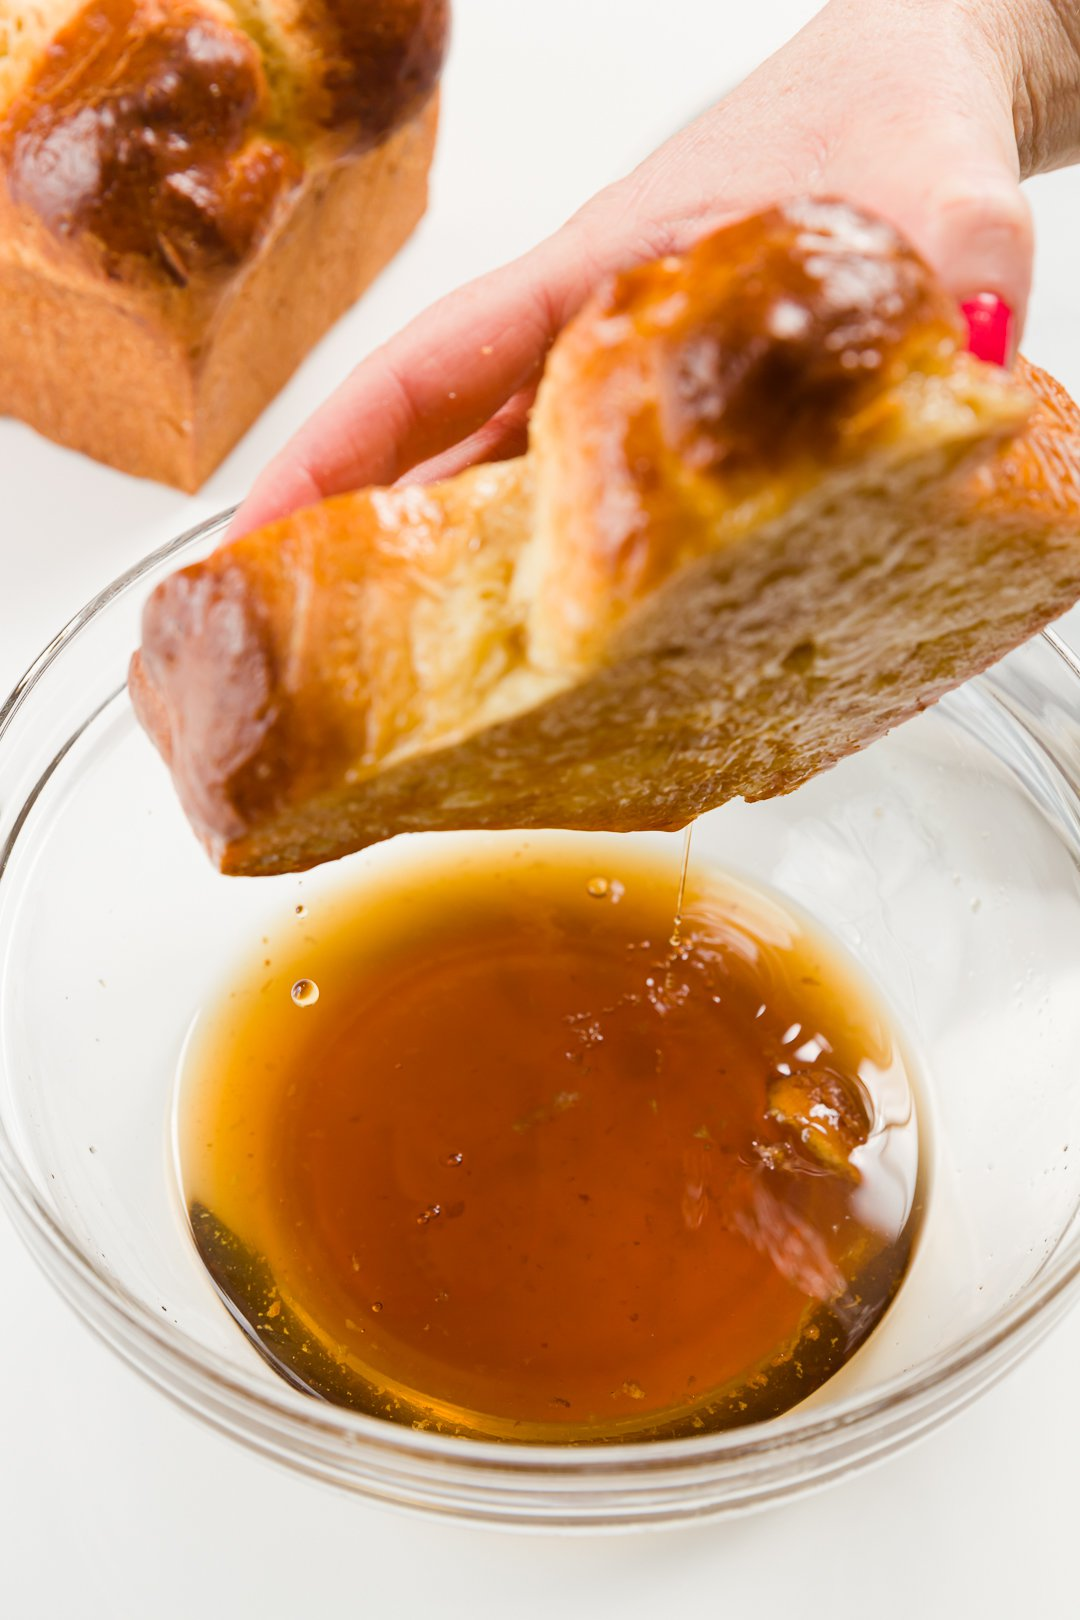 Dipping in almond syrup